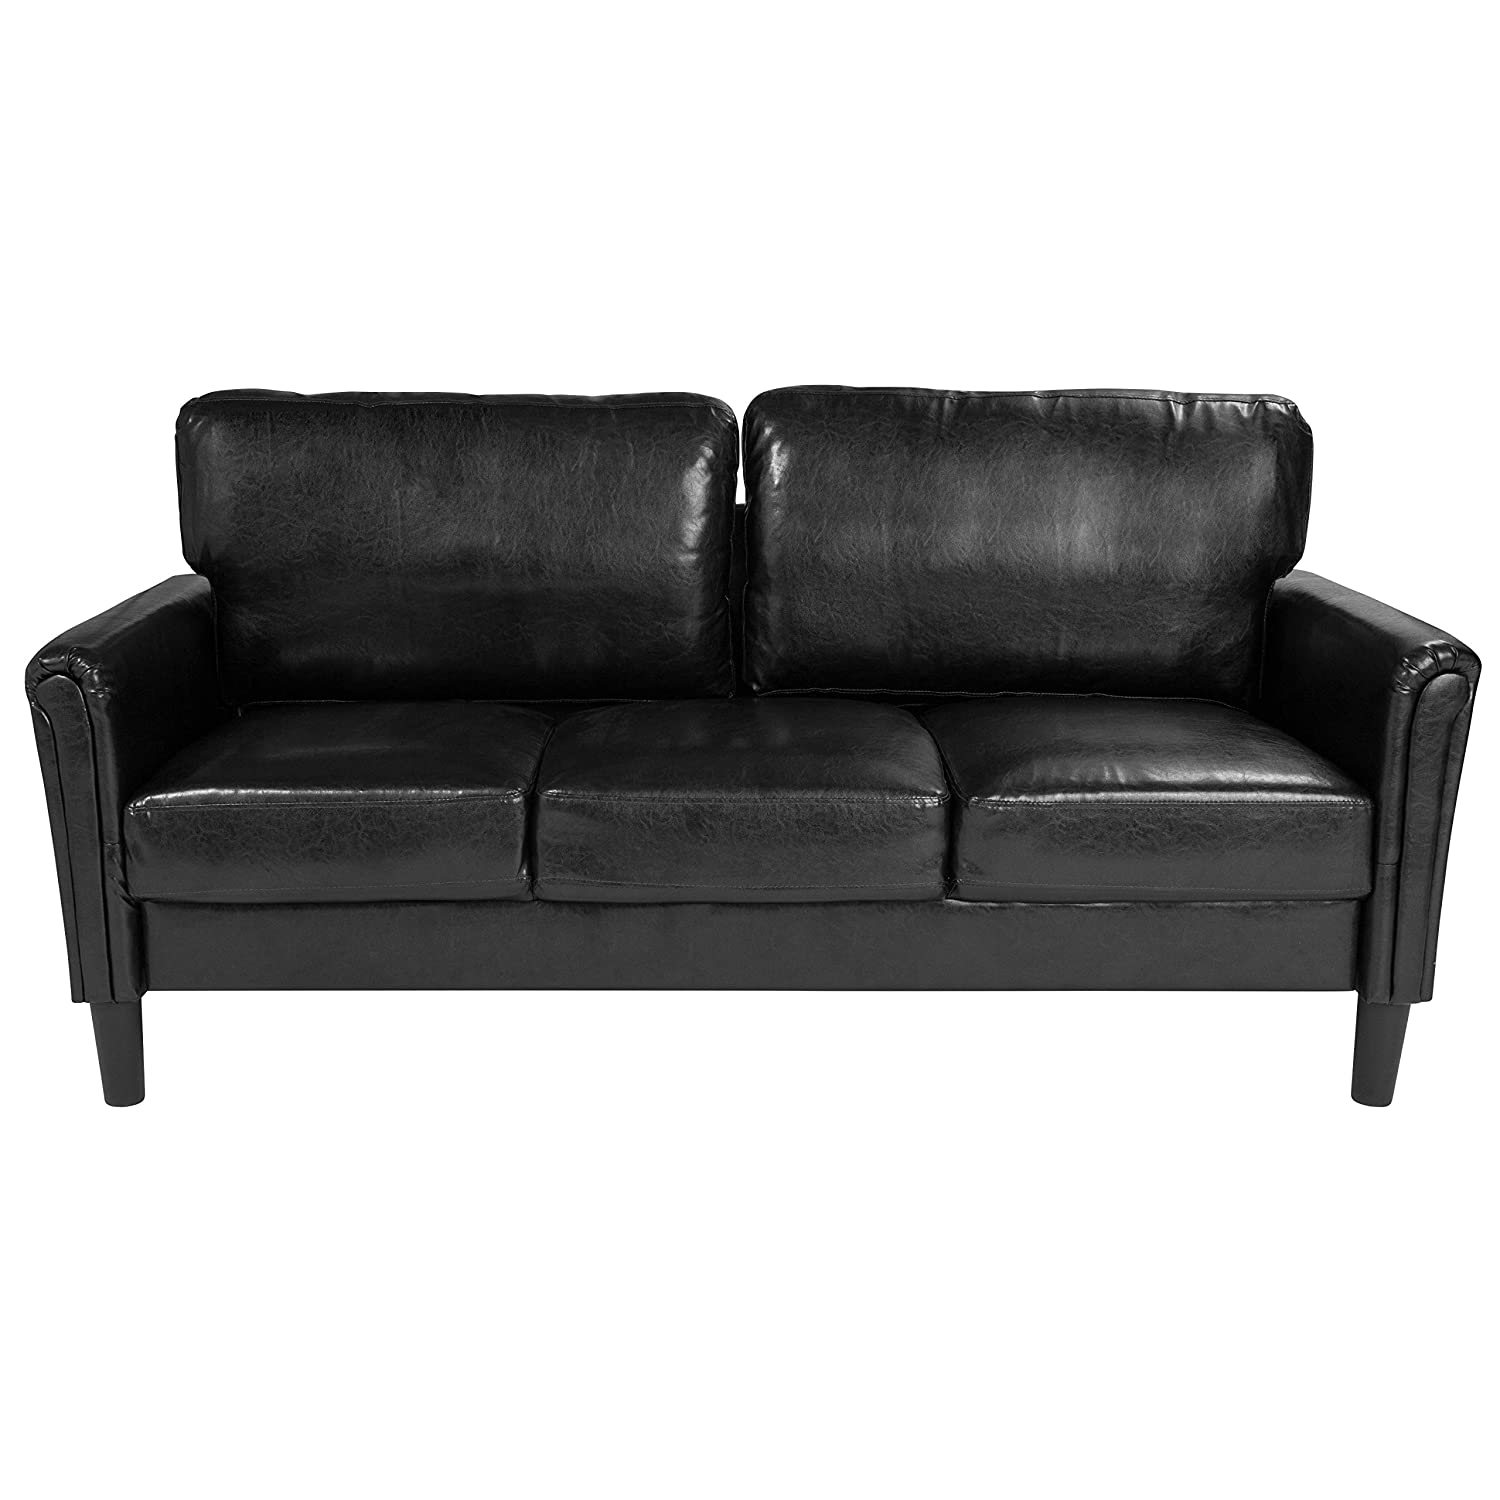 Flash Furniture Bari Upholstered Sofa in Black Leather